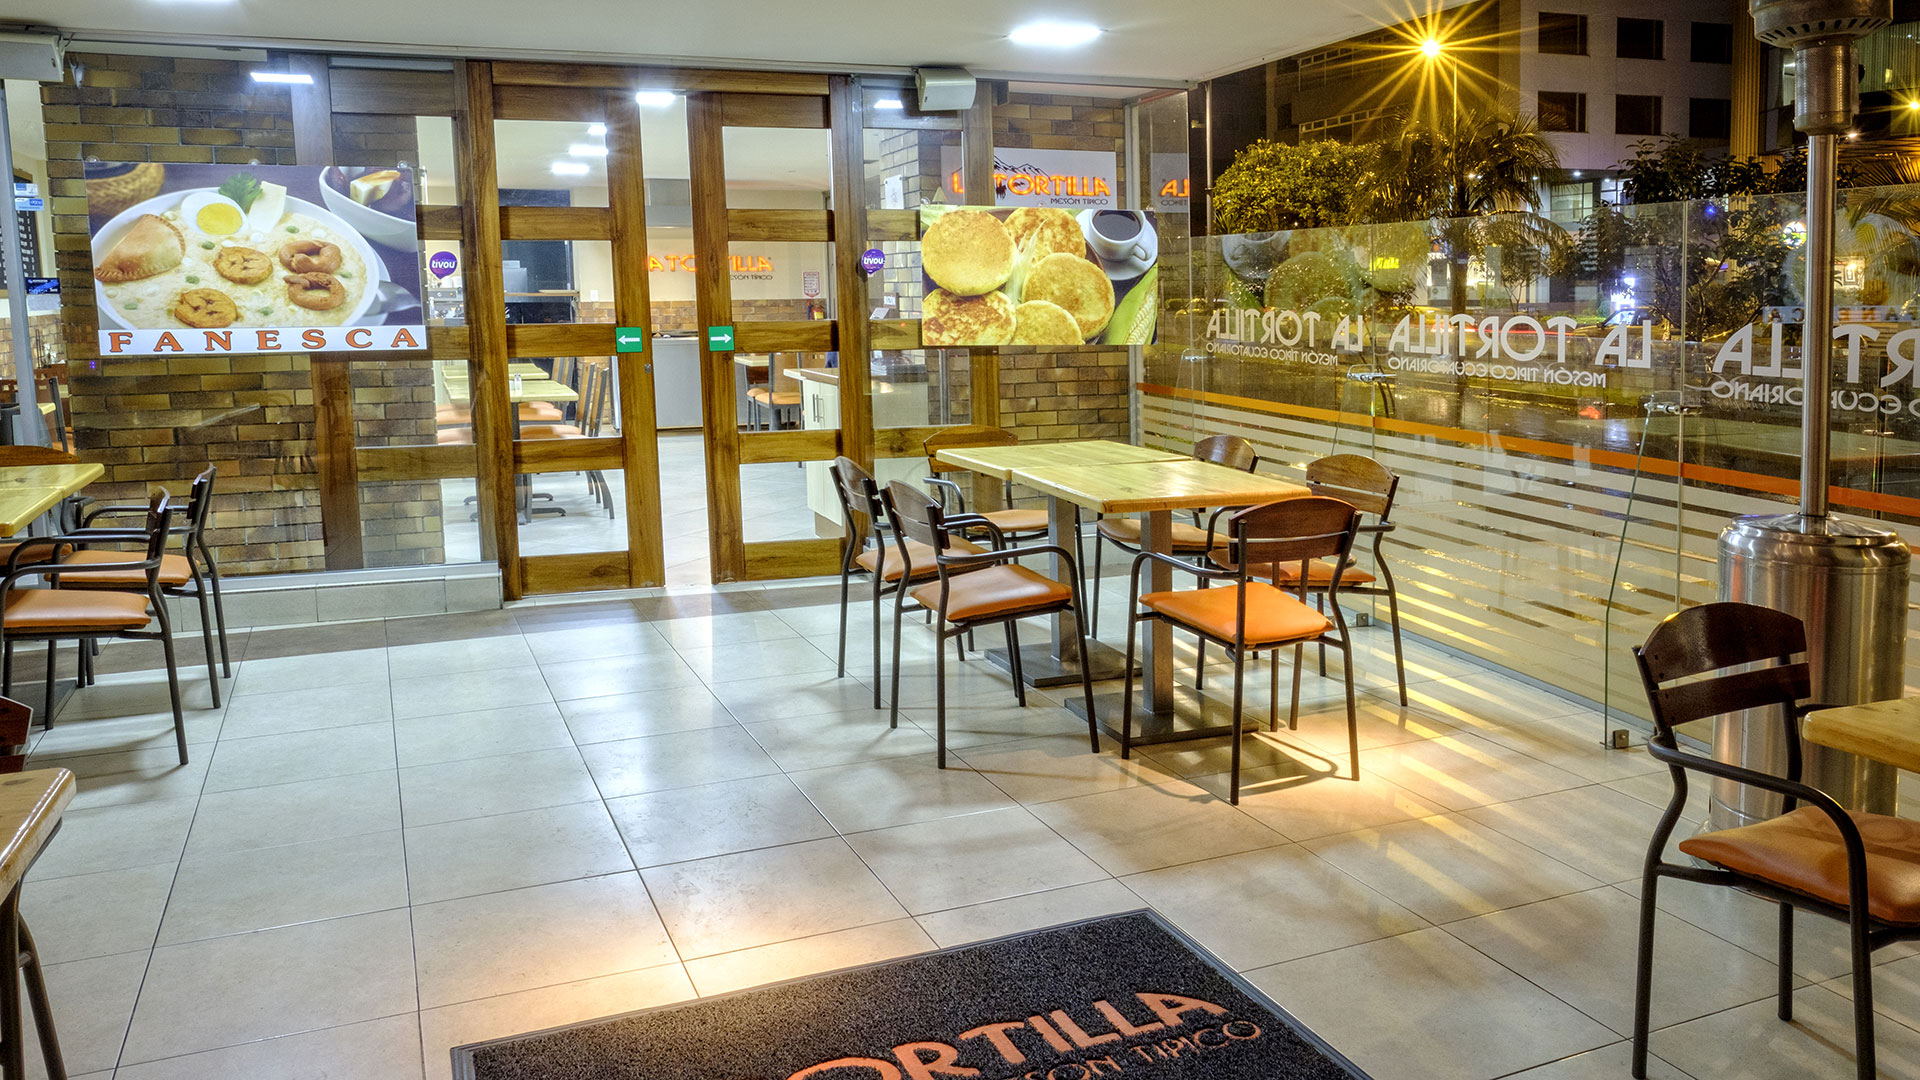 La Tortilla - Local República del Salvador